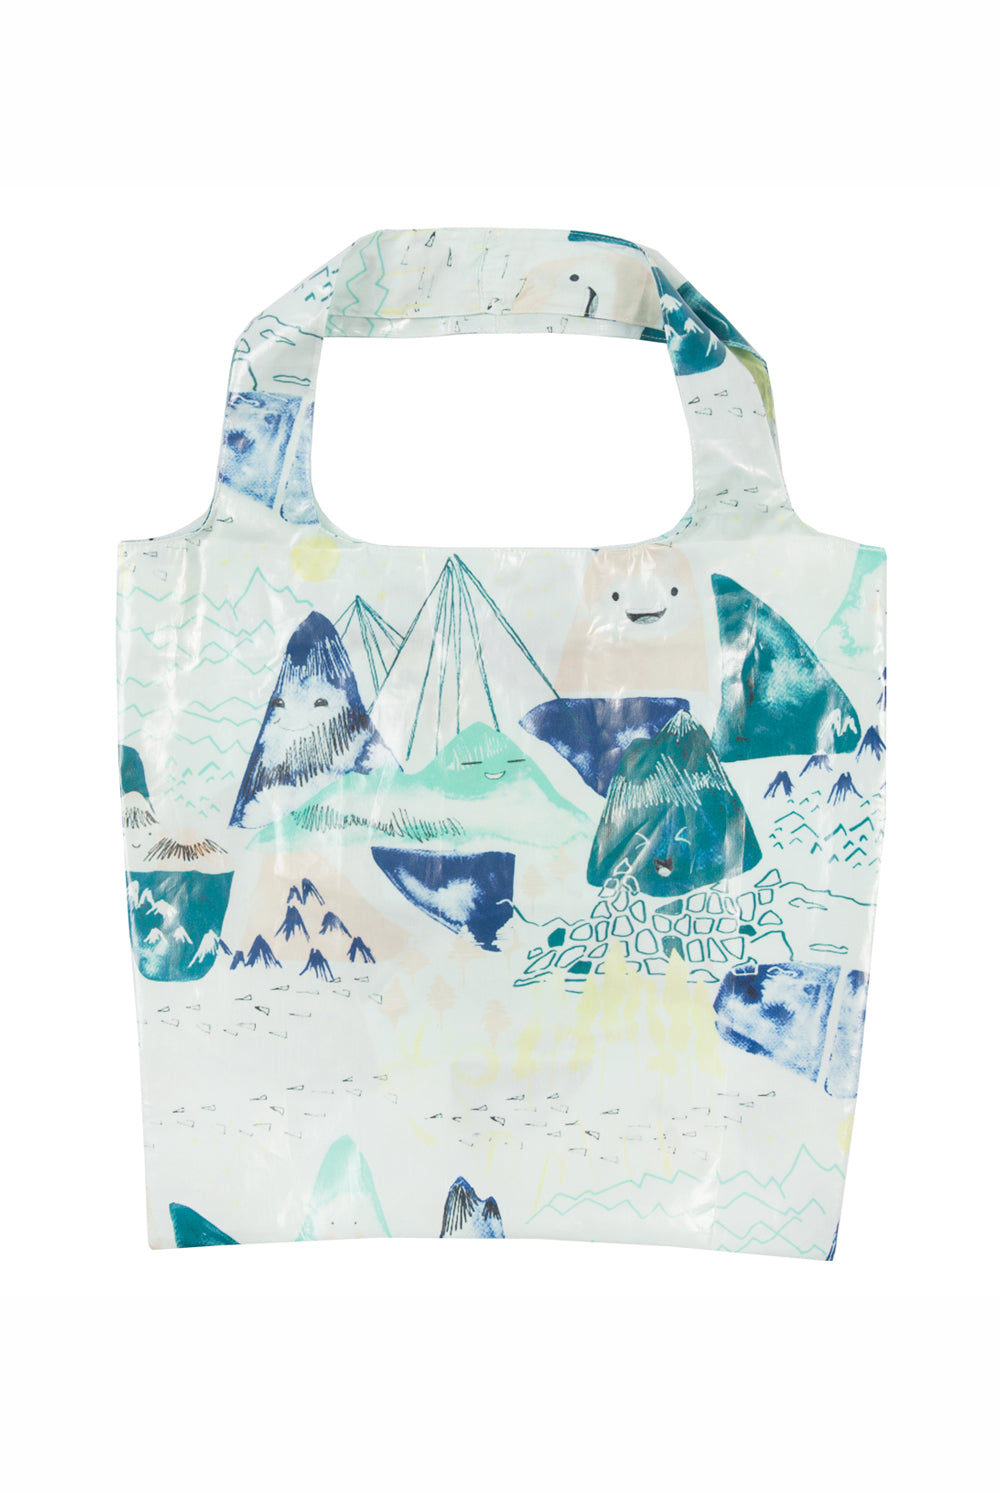 Blue Mountains Day Bag